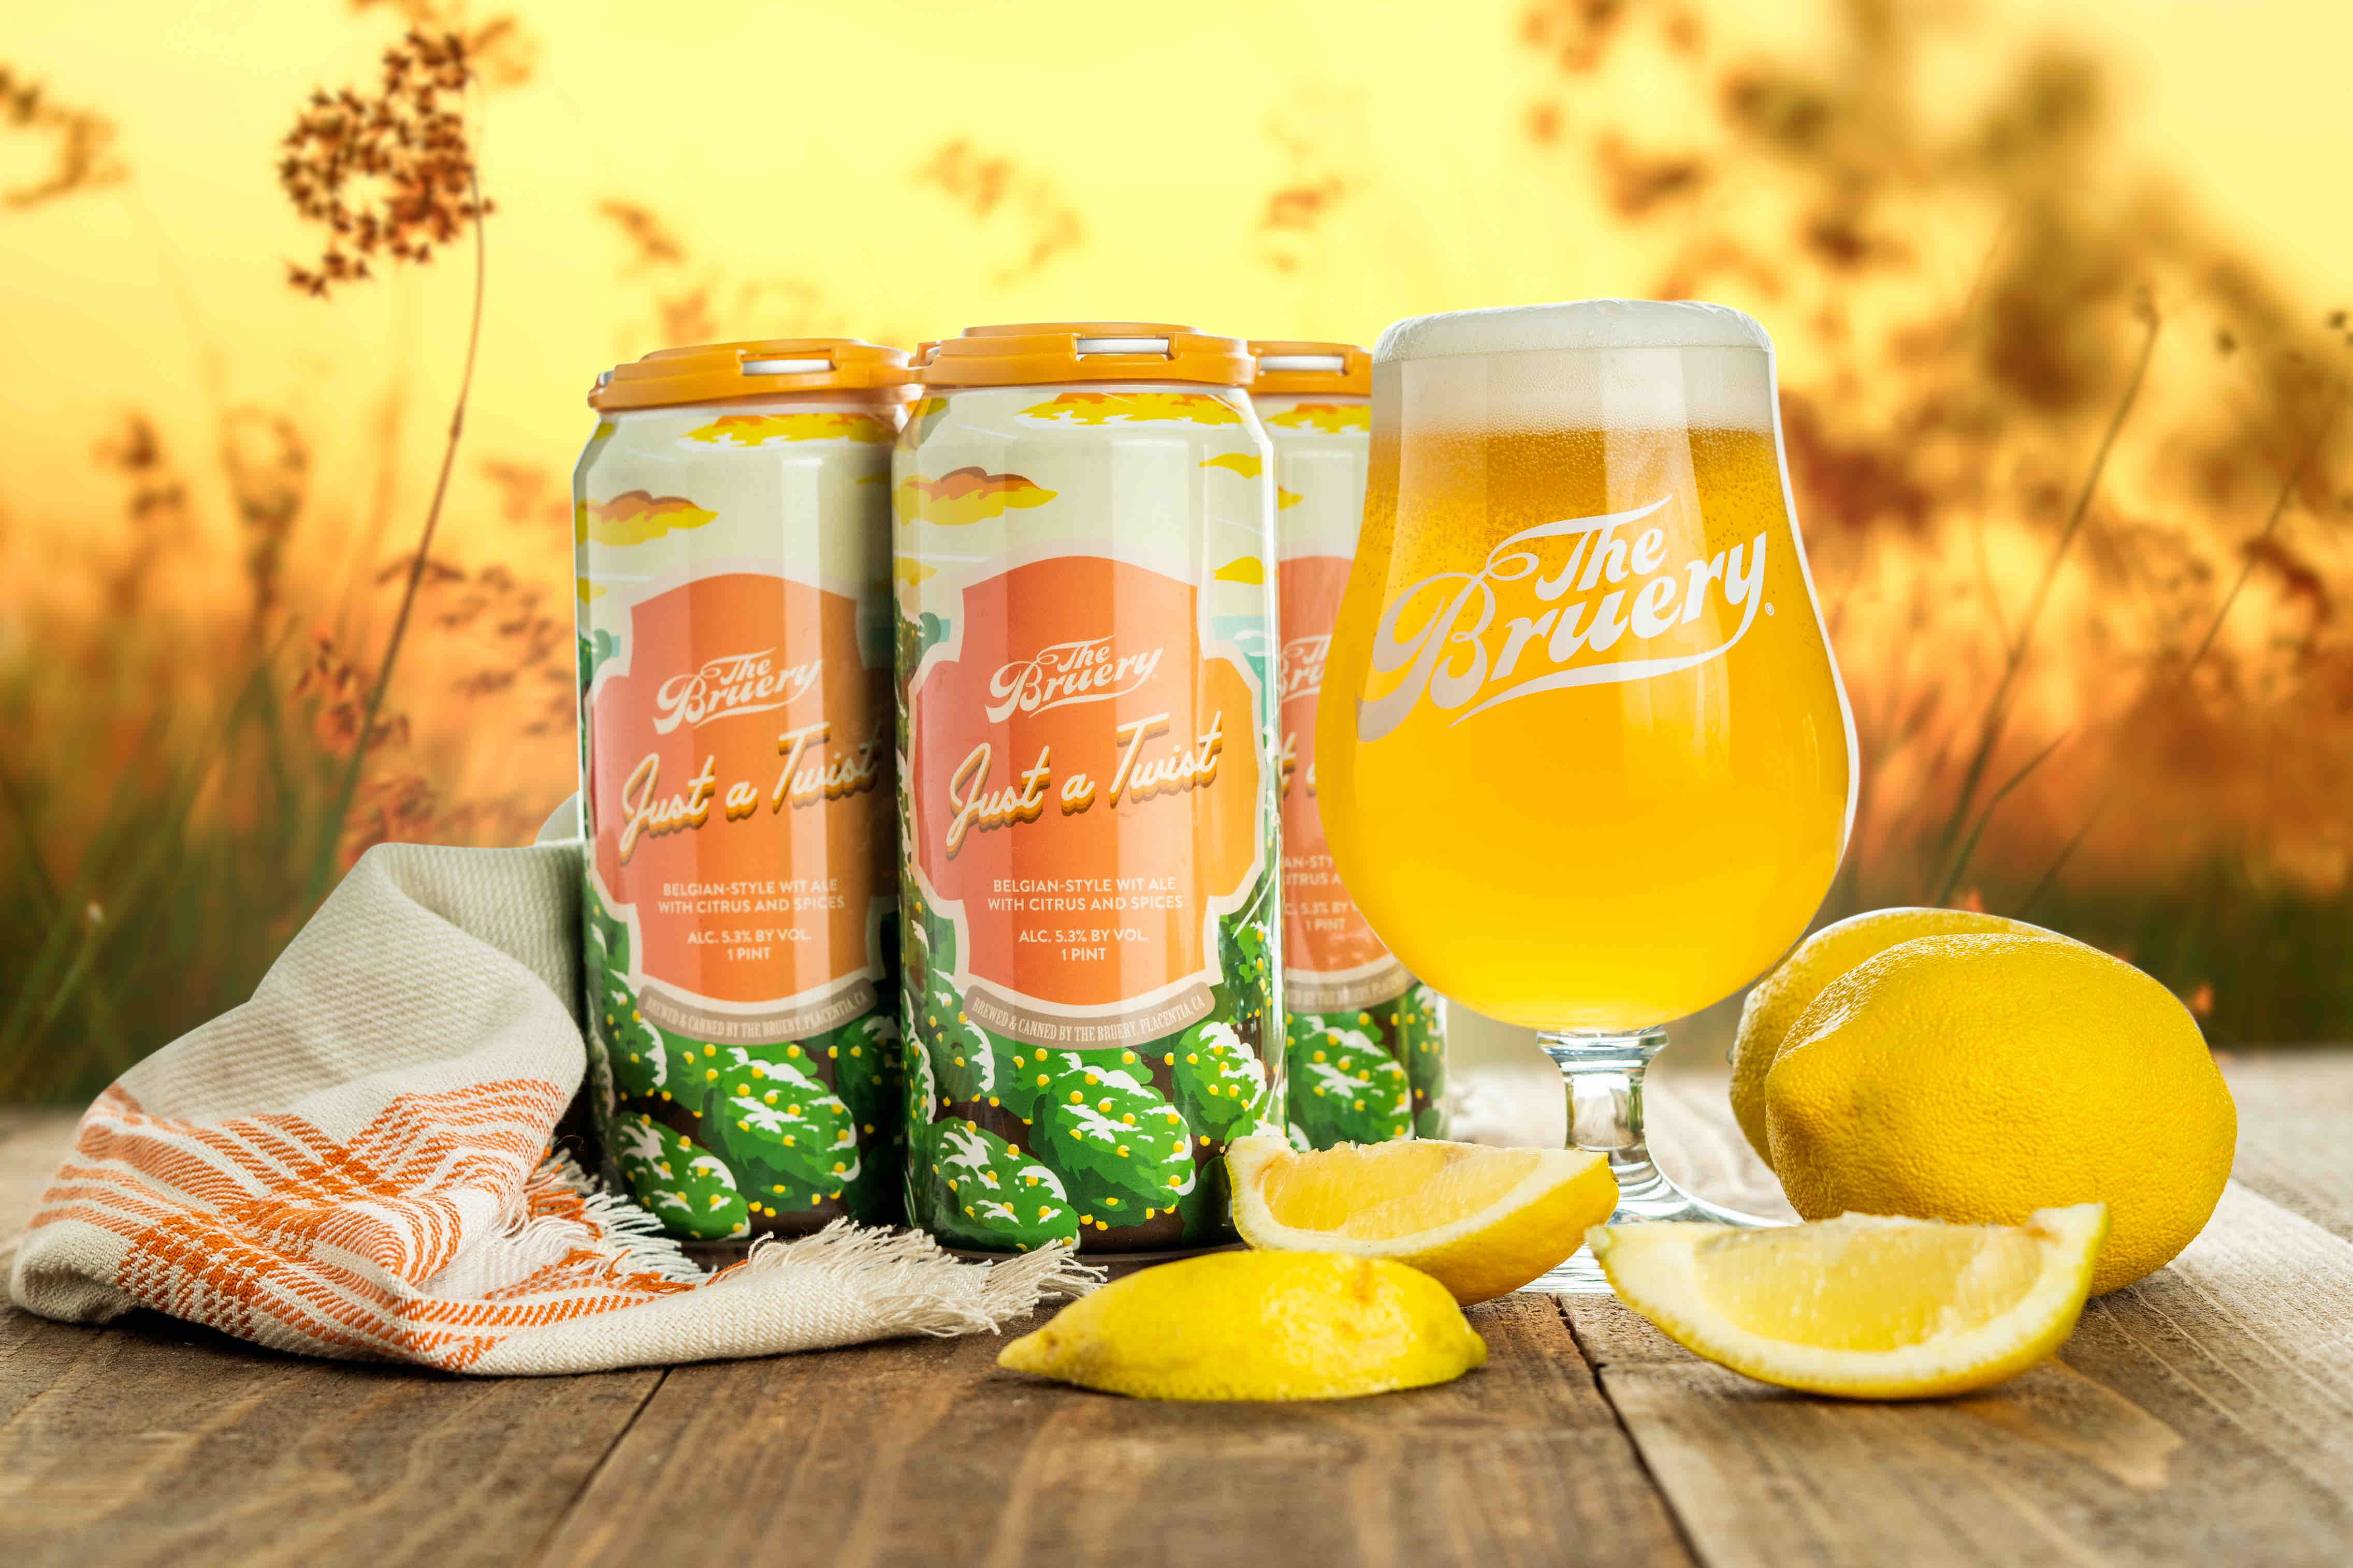 image of Just A Twist courtesy of The Bruery